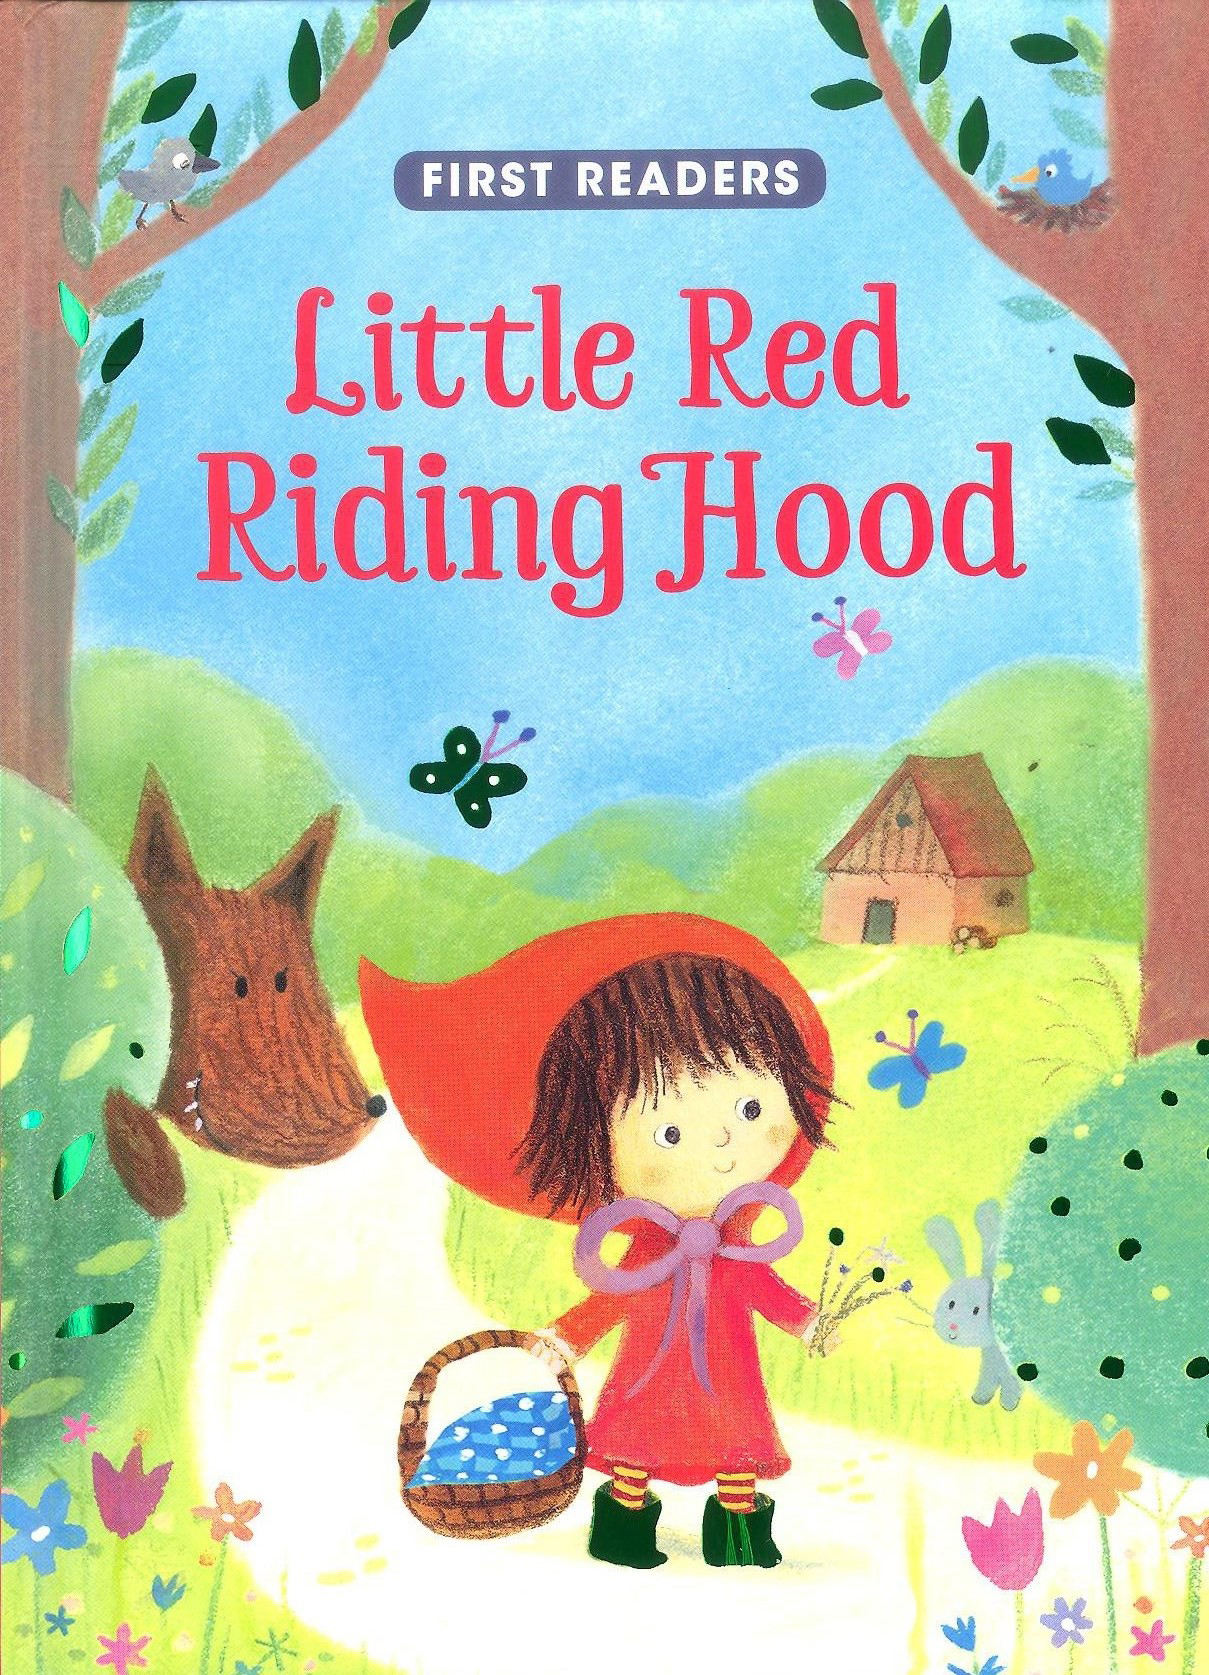 First Readers Series Little Red Riding Hood Kids Story Book